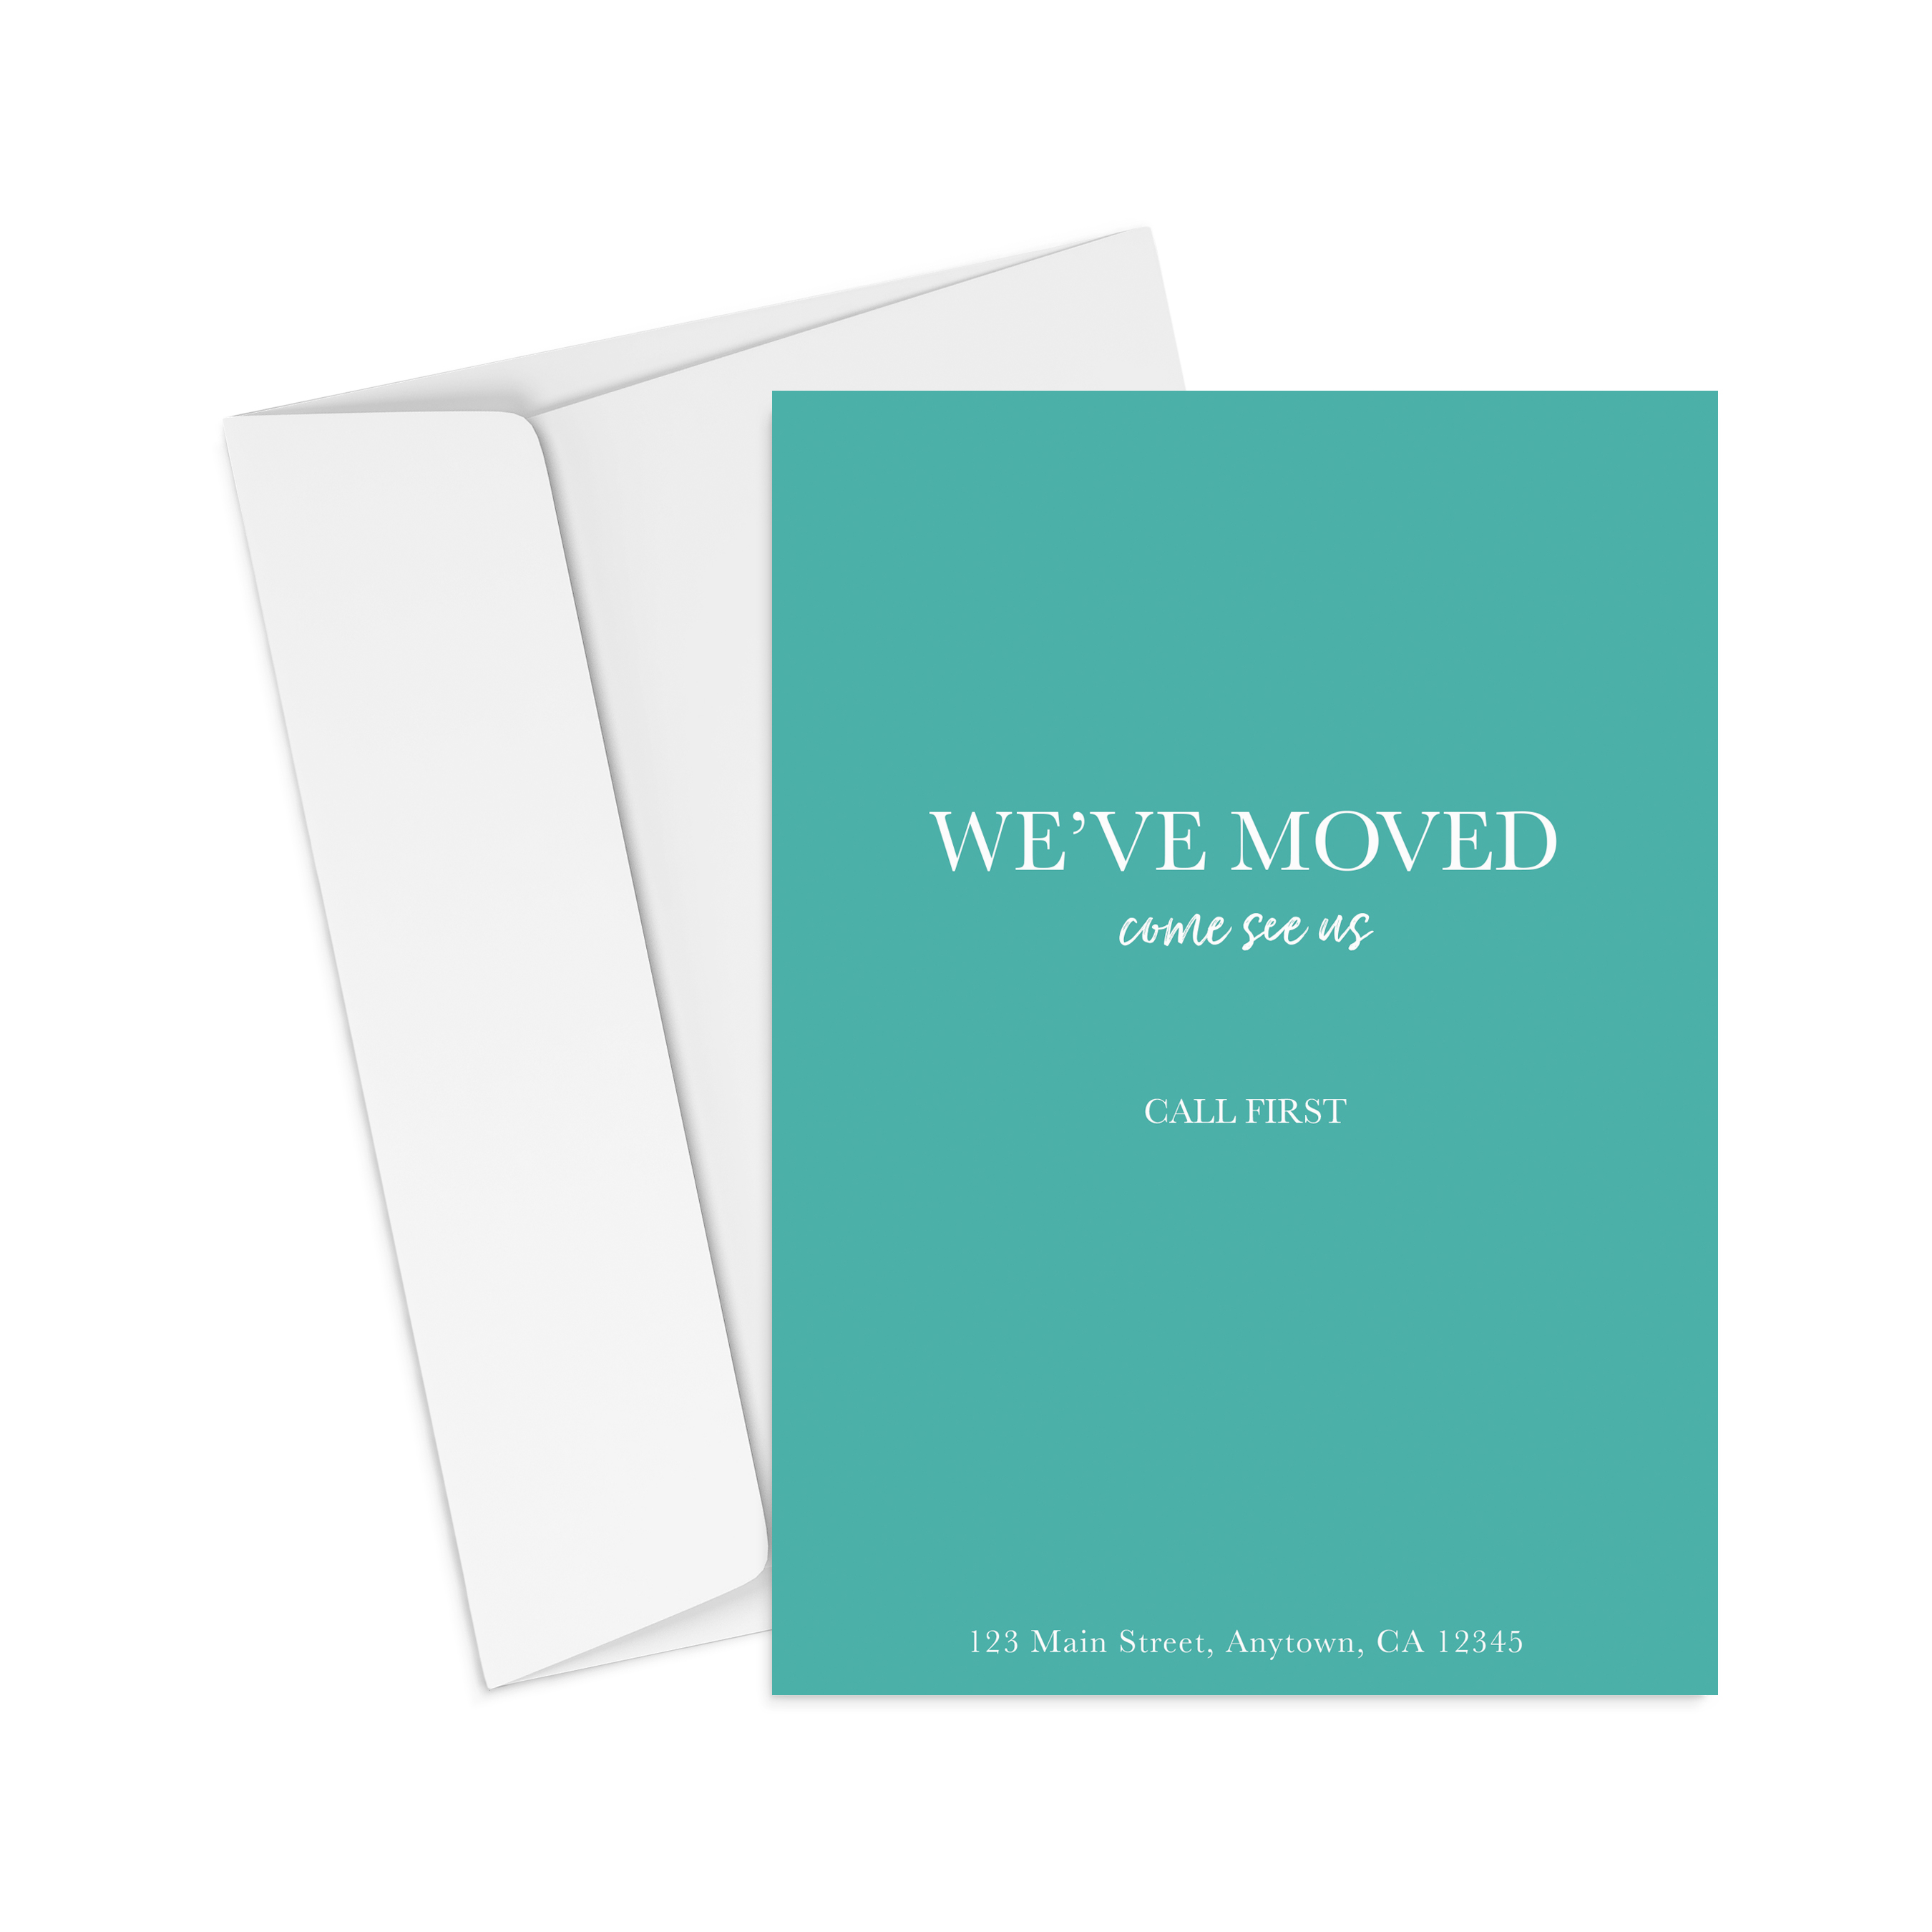 Corefact We Moved - Call First - Teal